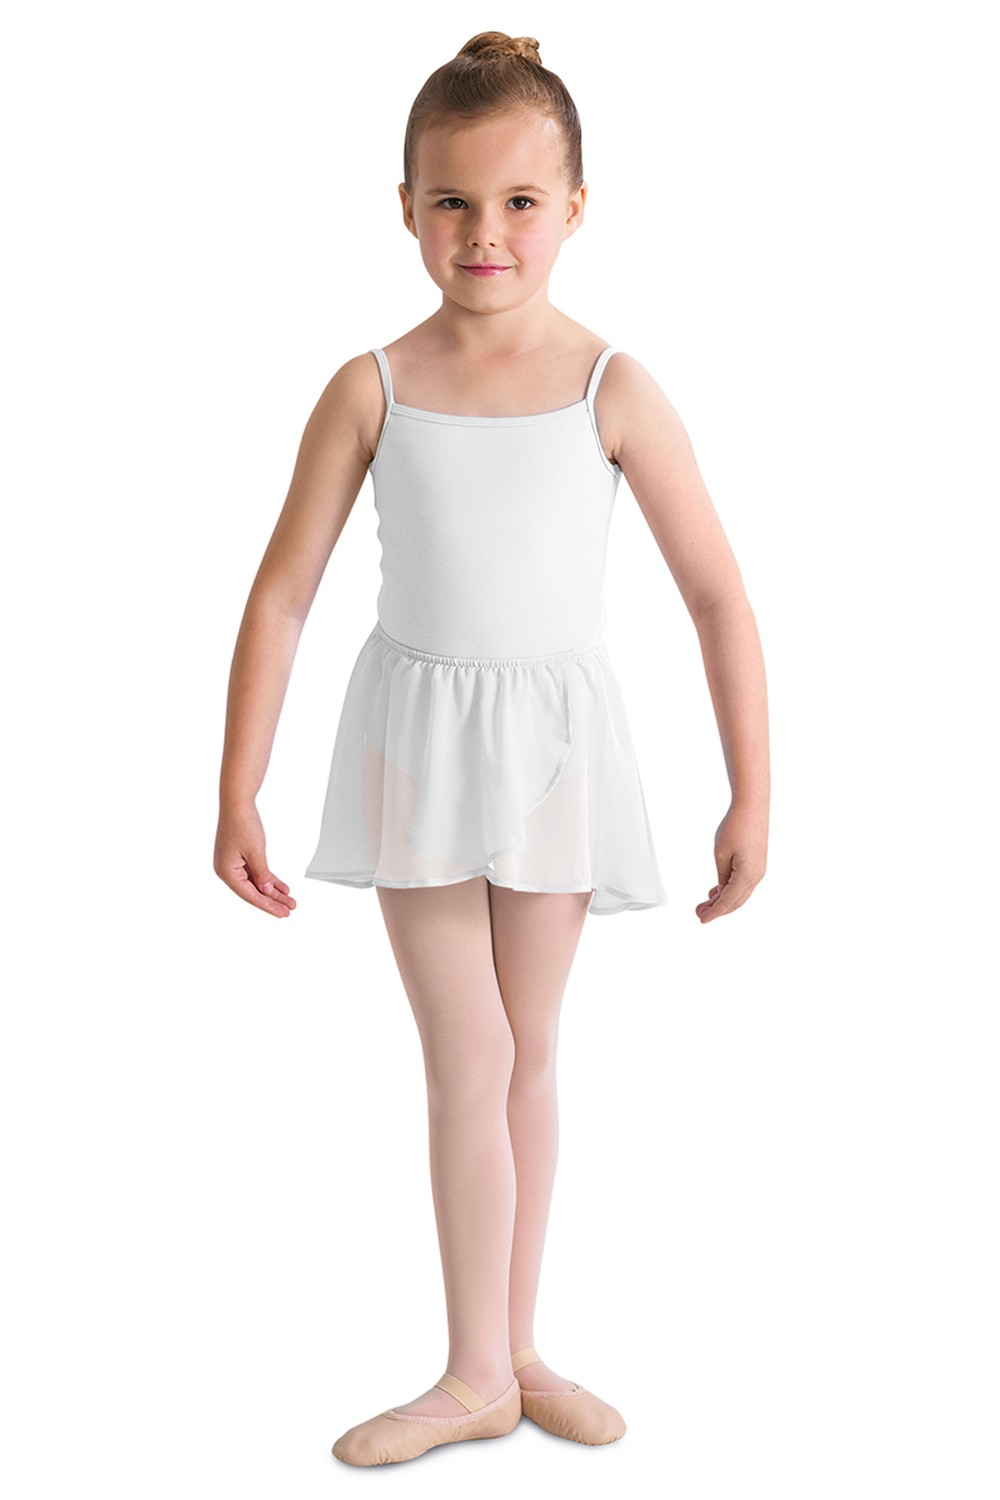 Barre Children's Dance Skirts